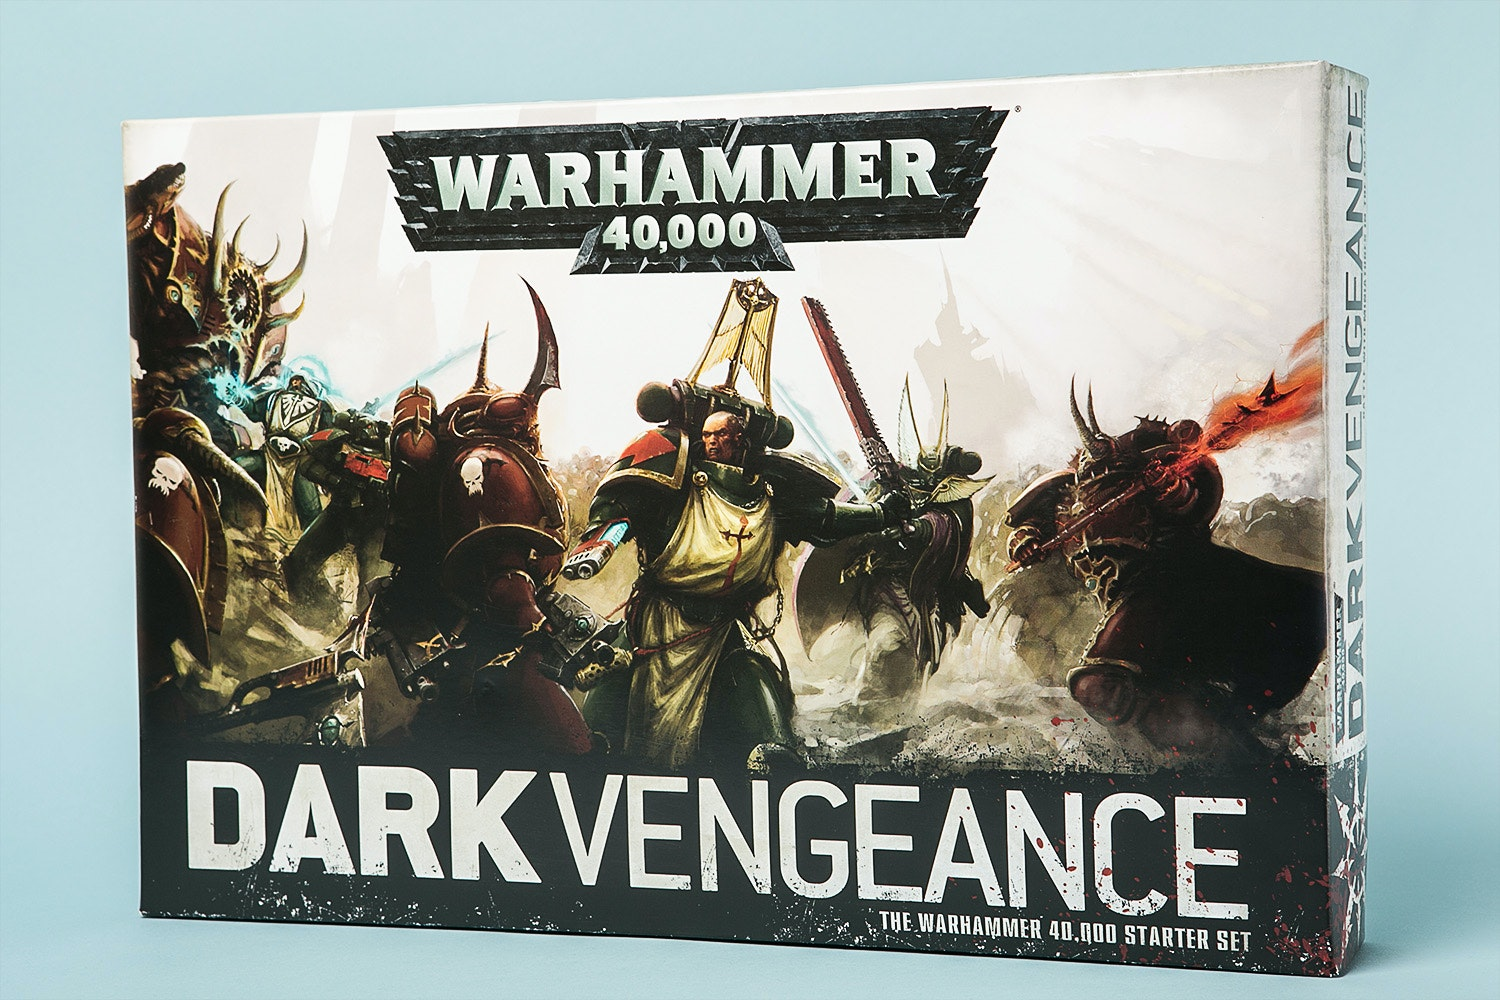 Warhammer 40,000 Dark Vengeance (2014 Edition)